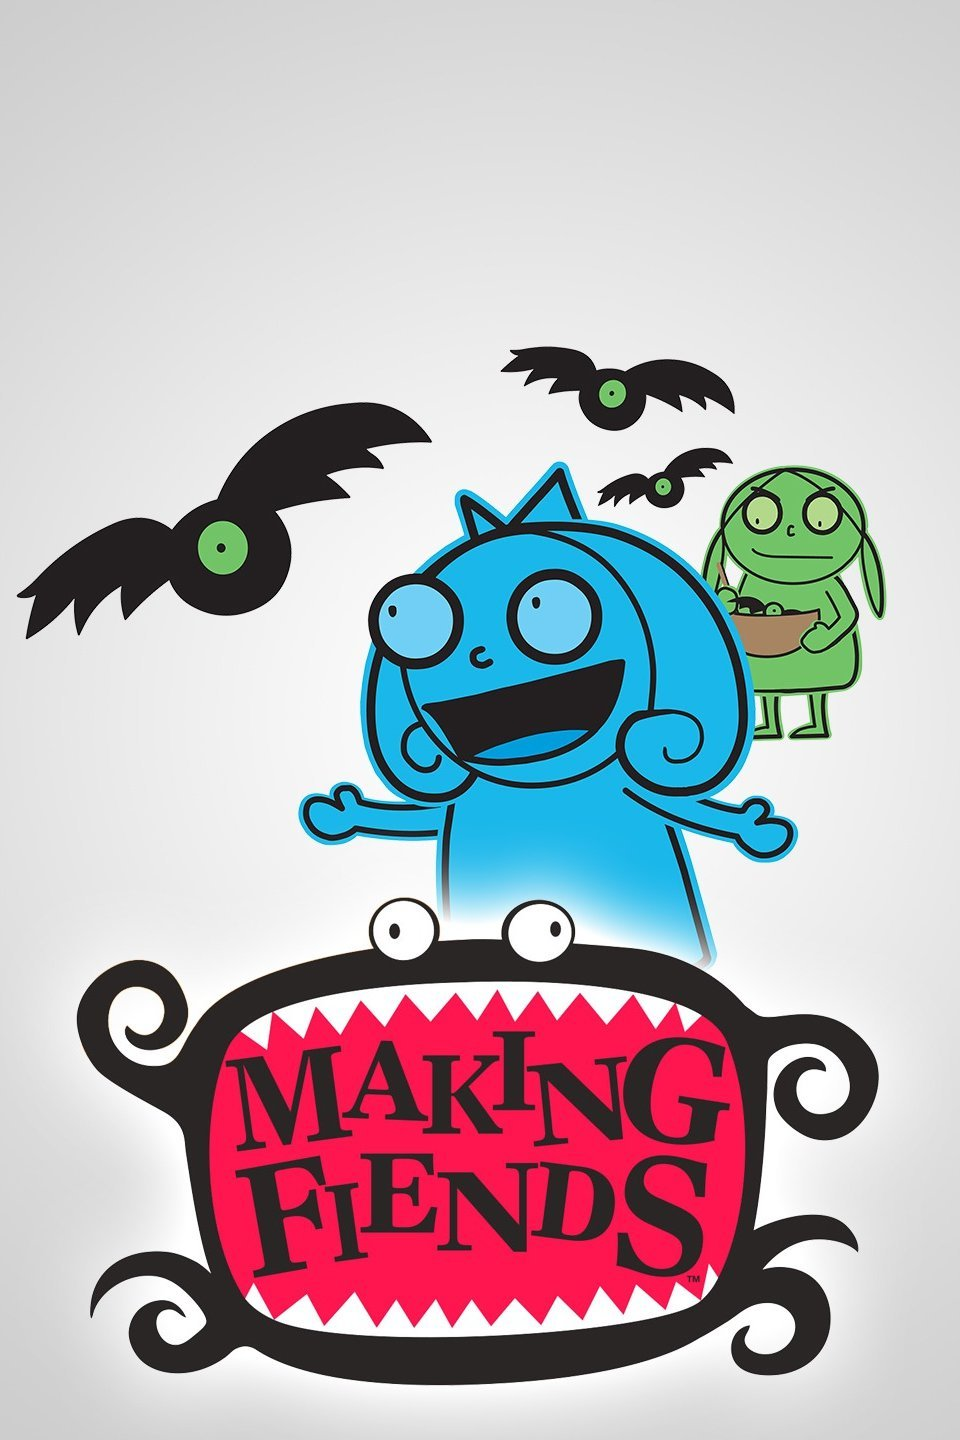 Making Fiends (TV Series)